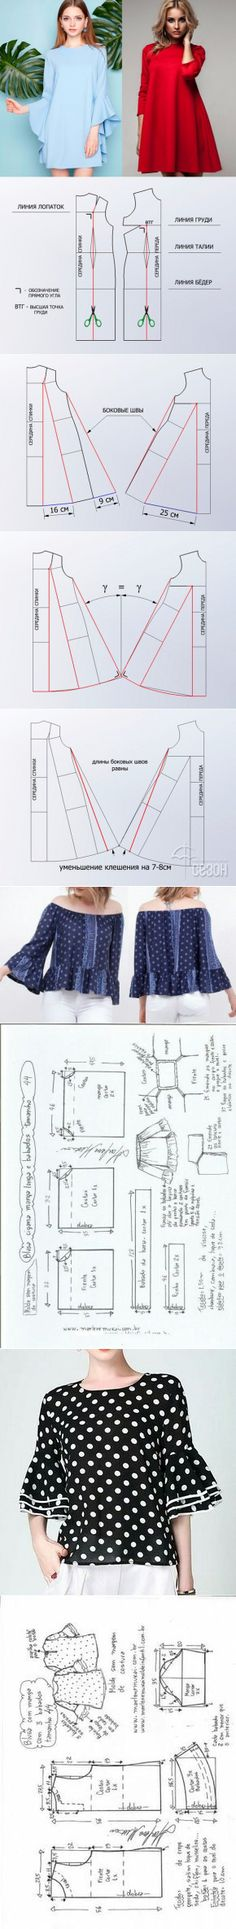 ru - Do it Yourself Clothes Dress Sewing Patterns, Blouse Patterns, Clothing Patterns, Diy Clothing, Sewing Clothes, Fashion Sewing, Diy Fashion, Aya Couture, Tent Dress